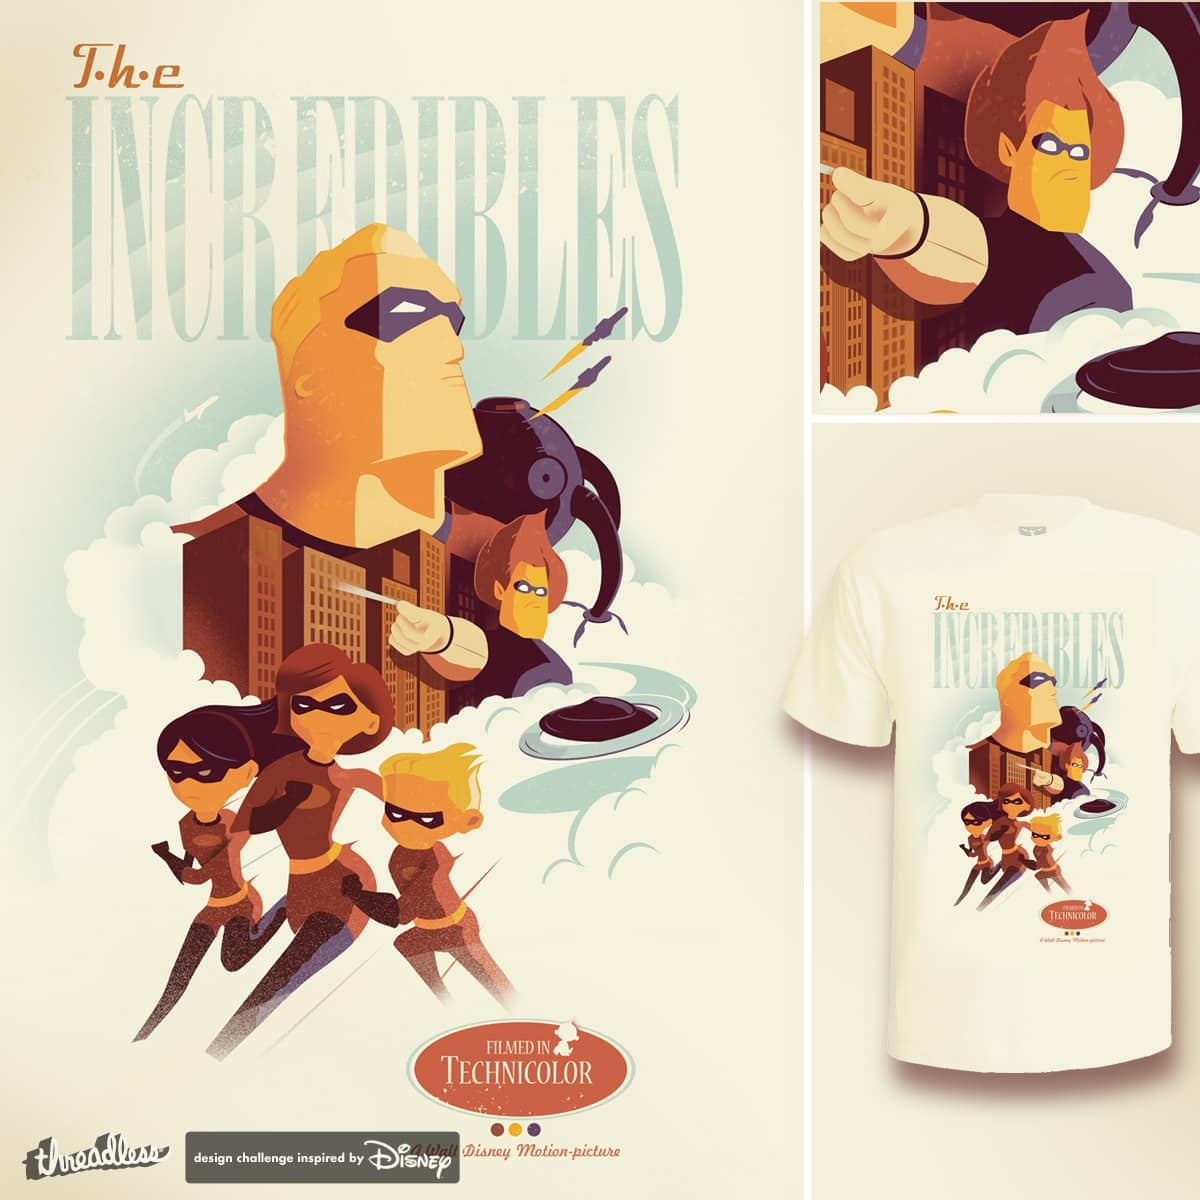 INCREDIBLES TO THE RESCUE by teedotdraws on Threadless